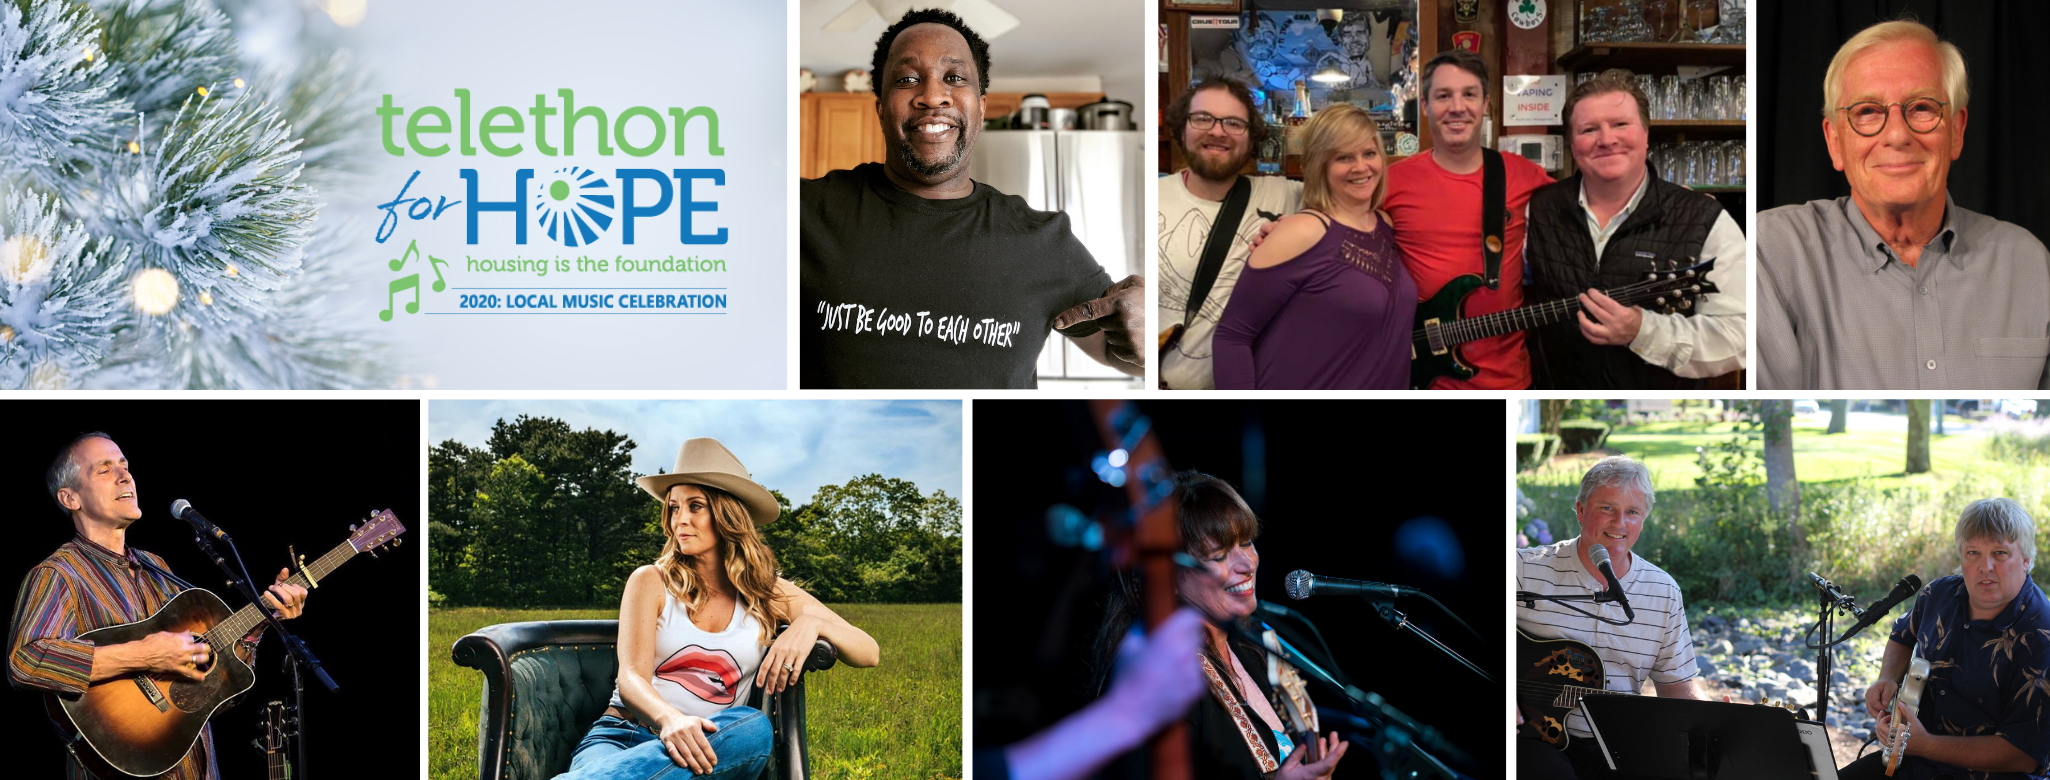 telethon for hope performers